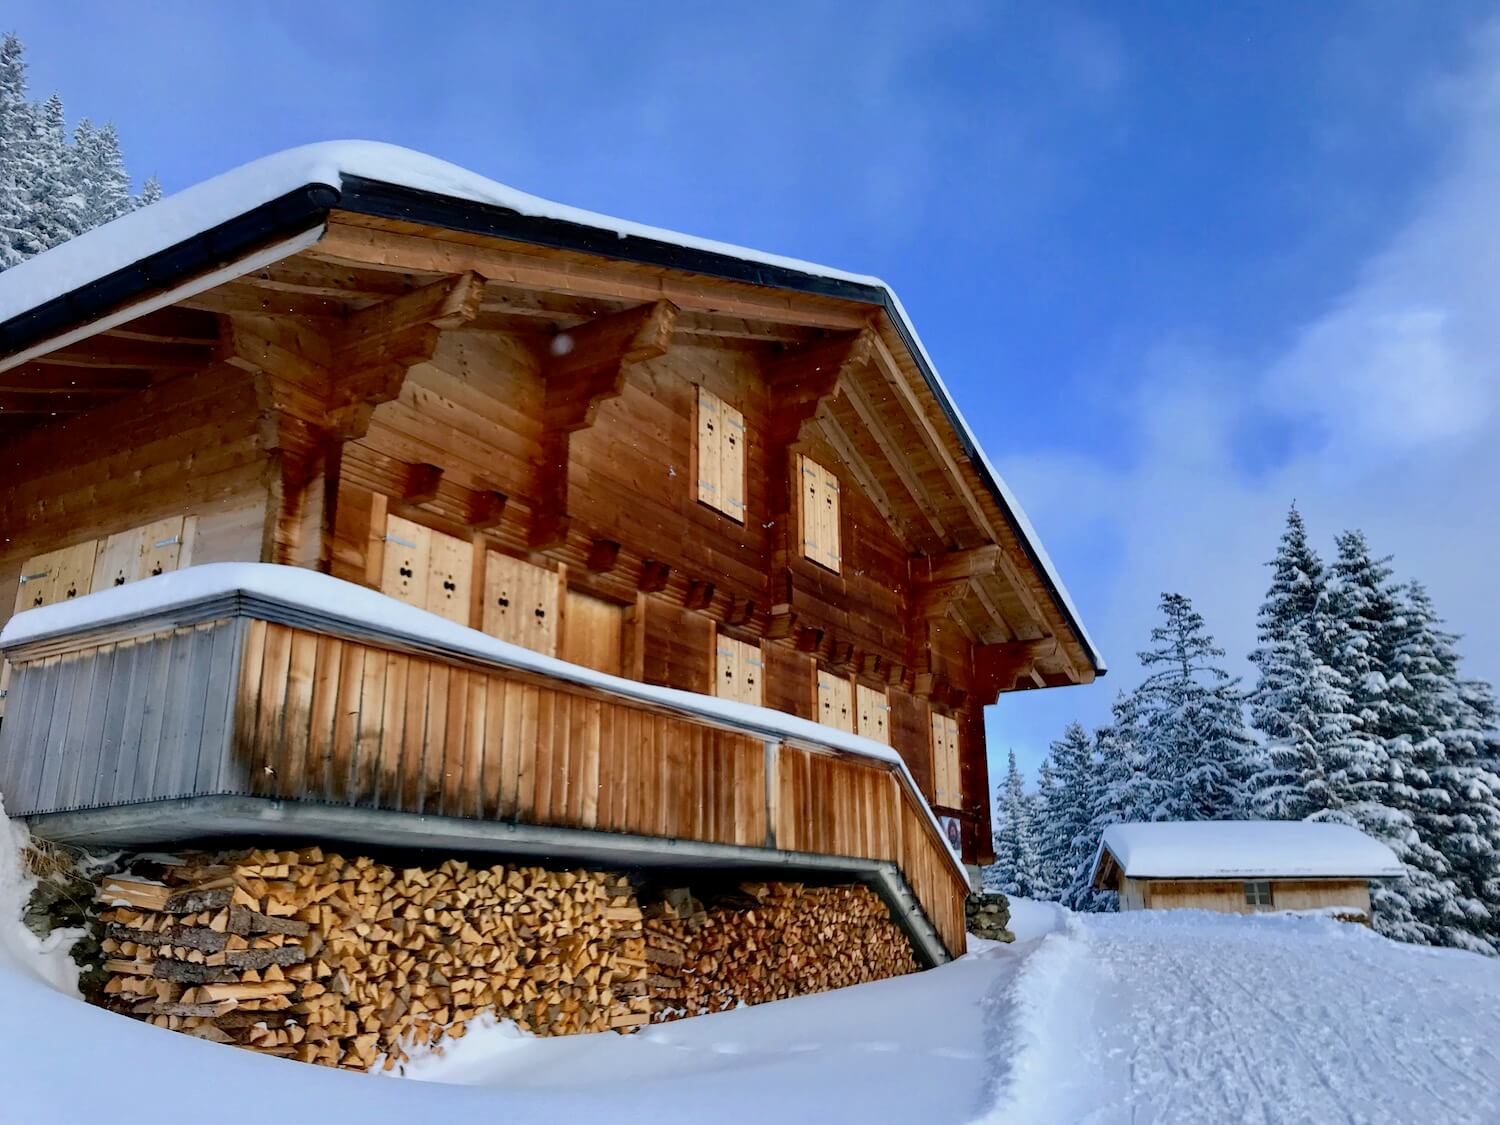 A Swiss chalet near Grindelwald in the Alpine recreation area. The bronze colored walls of the building are shuttered and an expansive wood pile tucks efficiently under the wrap around deck. It's a snowy scene with a groomed trail to the right and crisp blue sky above.